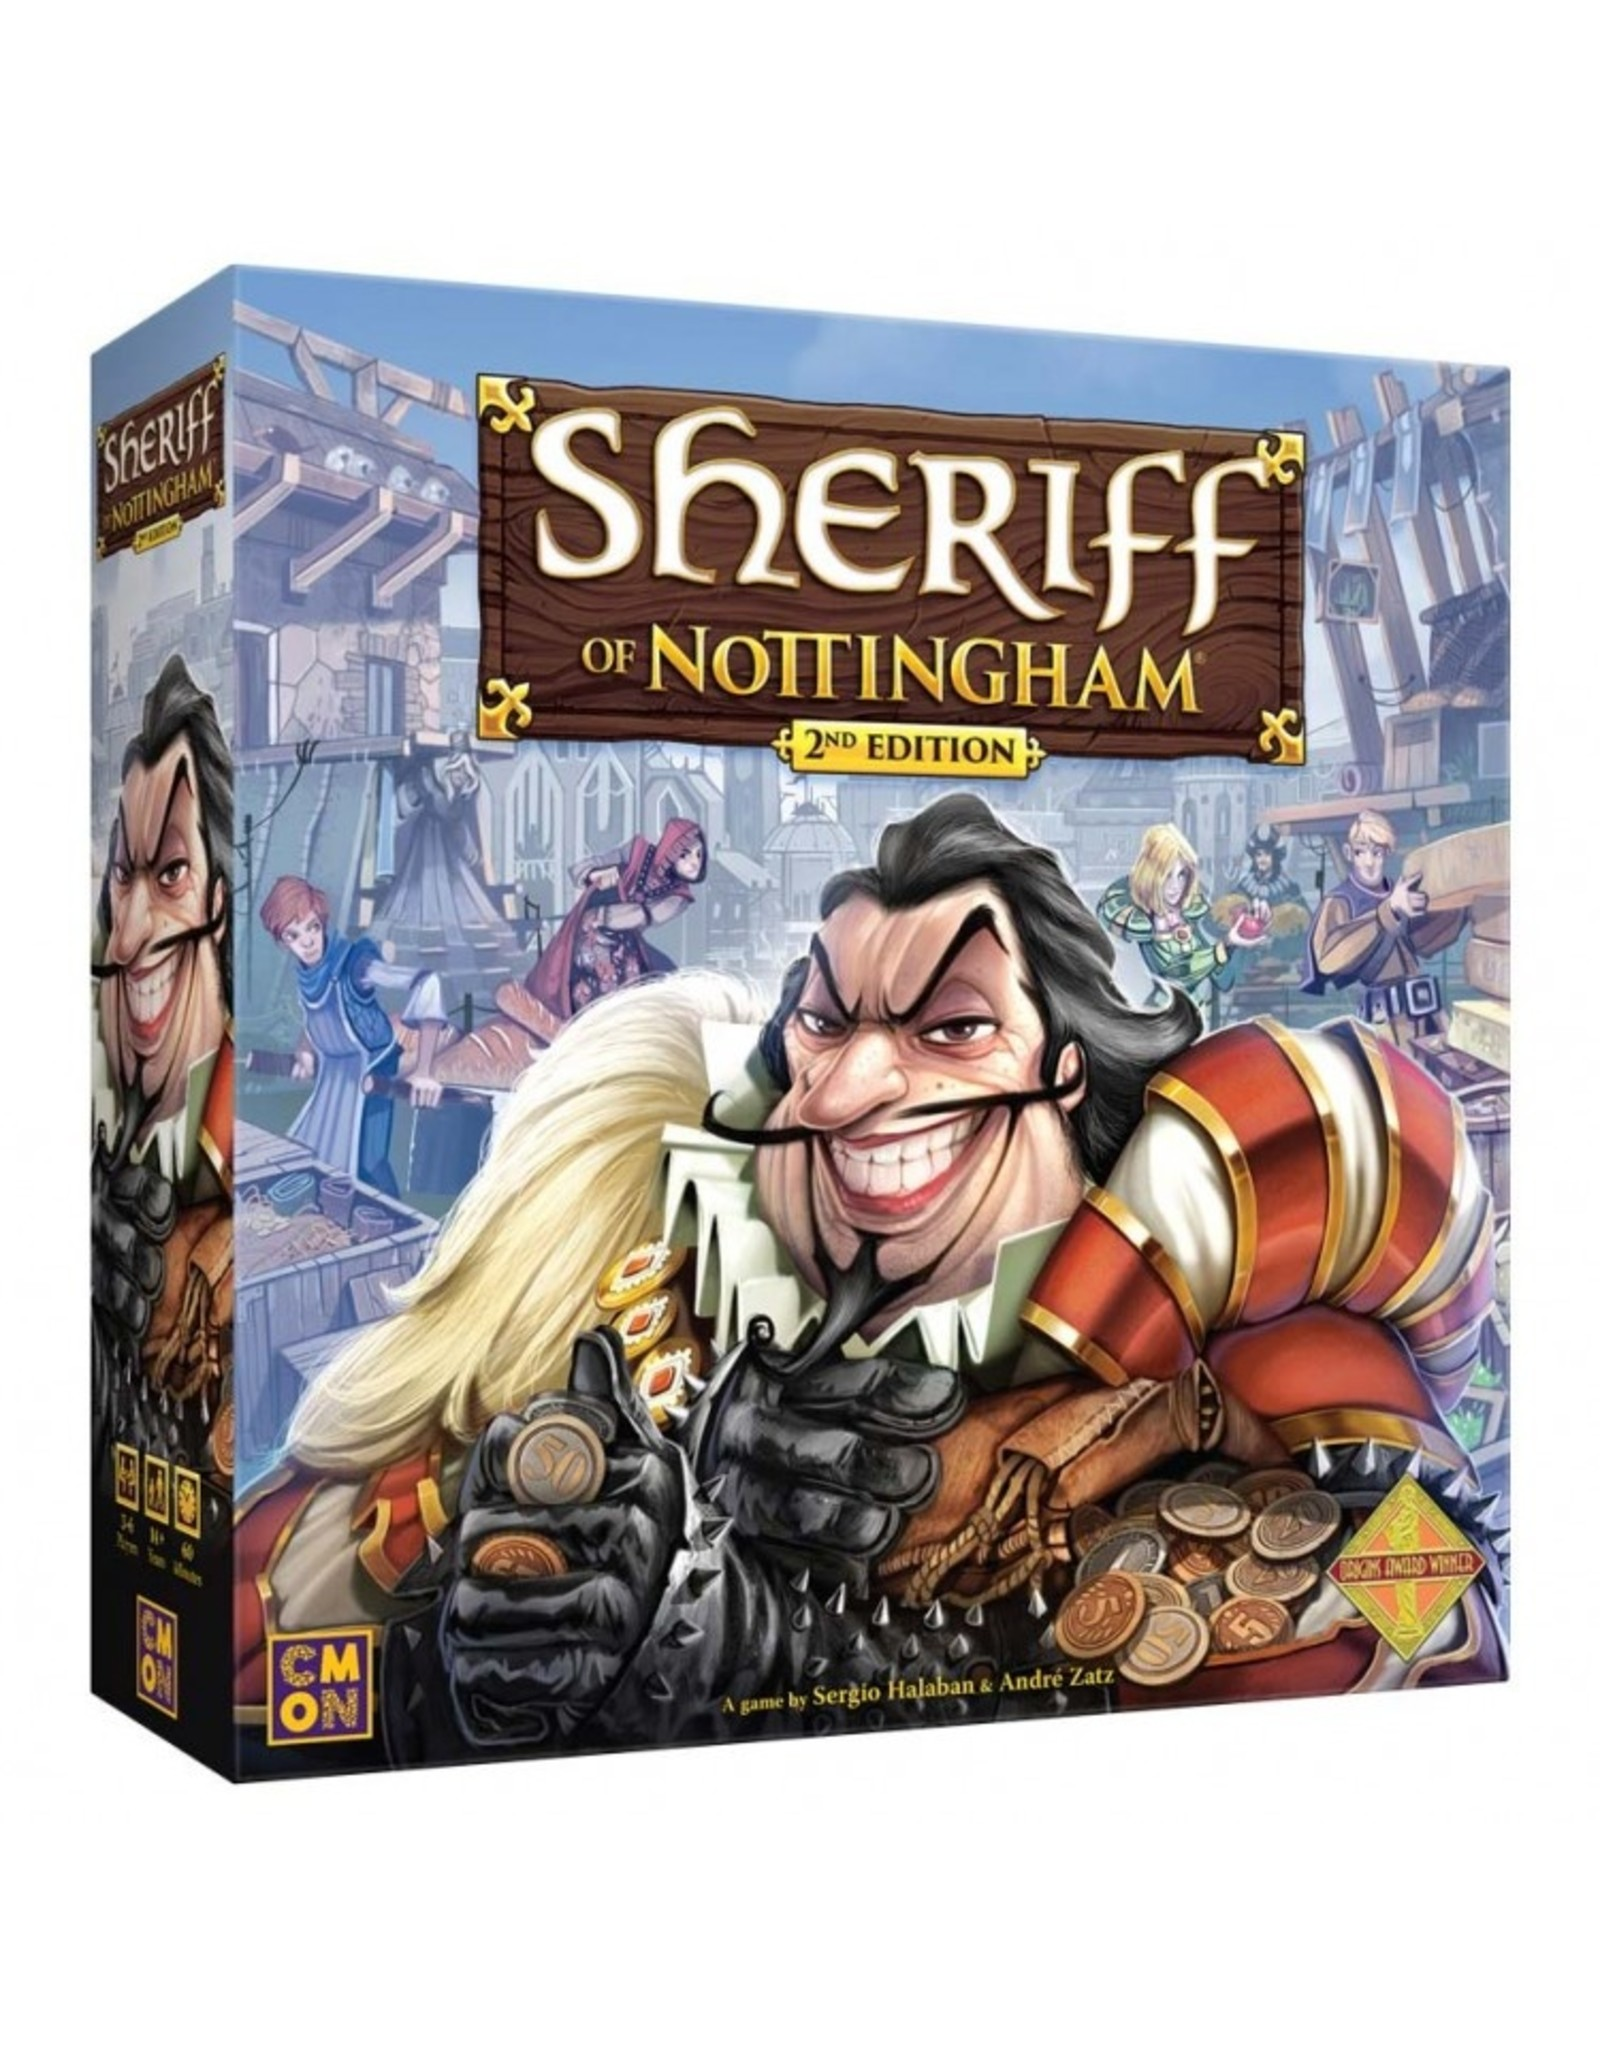 Cool Mini or Not Sheriff of Nottingham, 2nd Edition